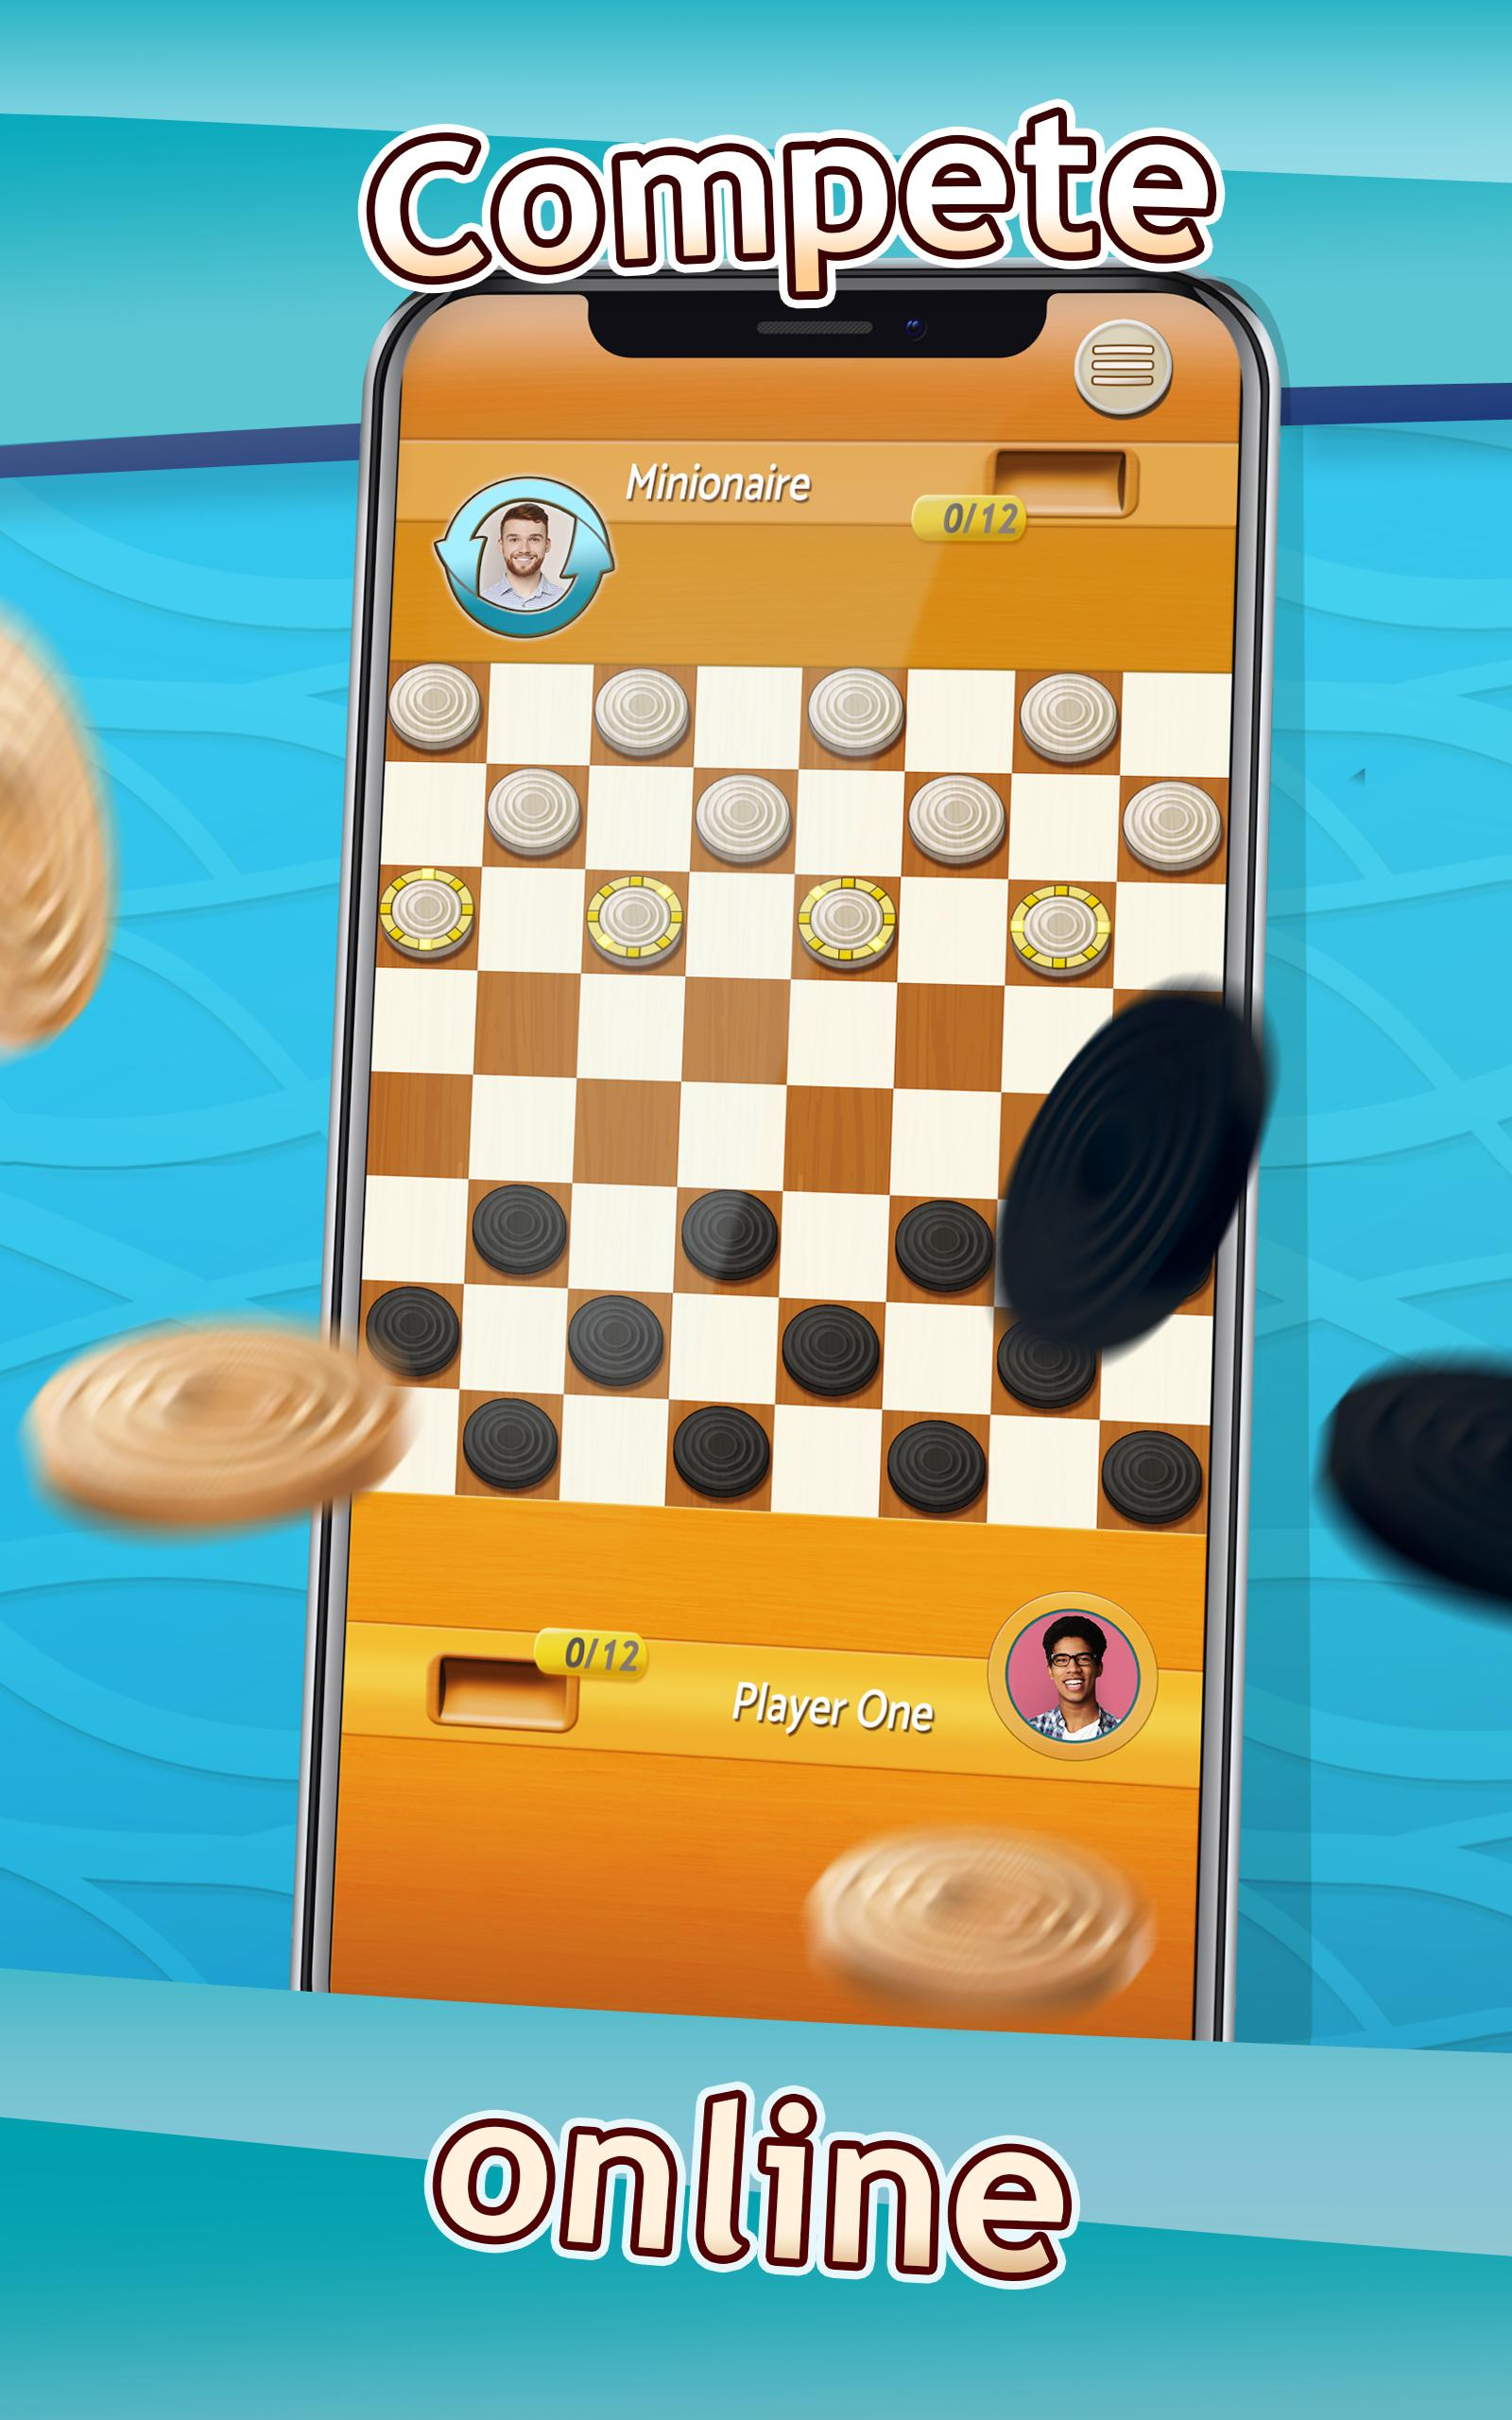 Checkers Draughts Multiplayer Board Game 2.4.4 Screenshot 8